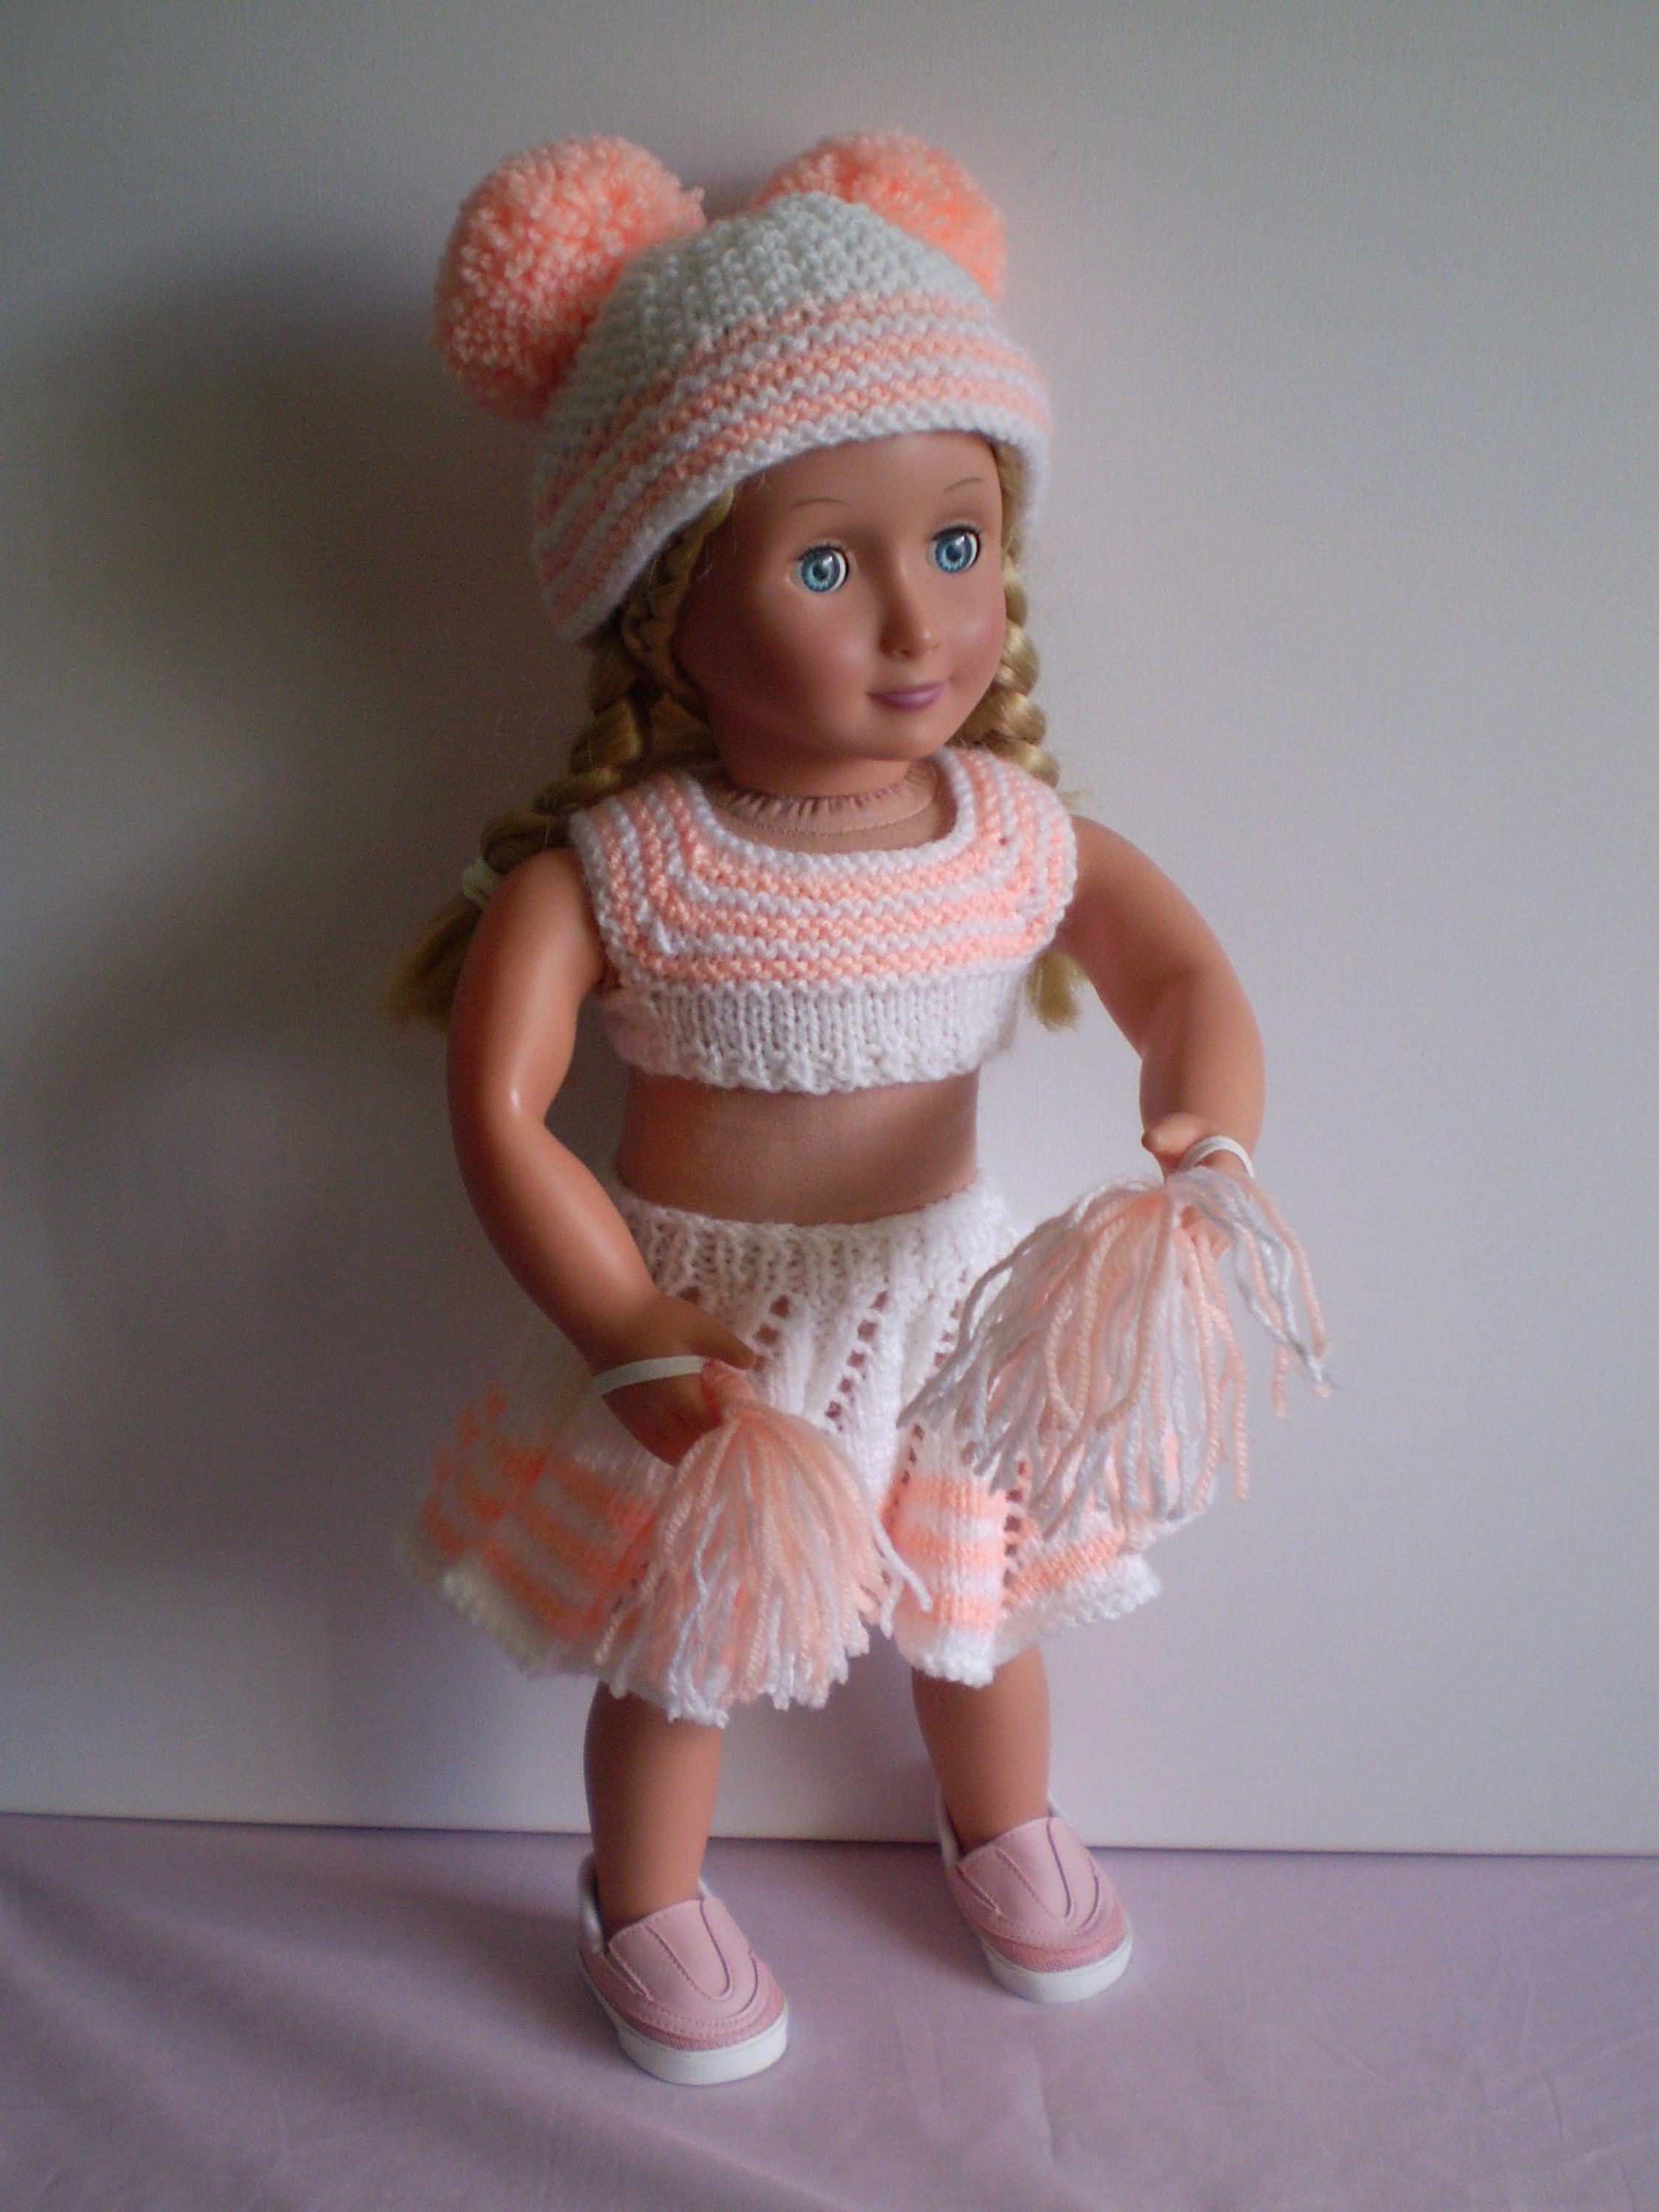 Hand knitted 18 inch Cheerleader outfit for poplar dolls #18inchcheerleaderclothes Hand knitted 18 inch Cheerleader outfit for poplar dolls by cazjeanknitting on Etsy #18inchcheerleaderclothes Hand knitted 18 inch Cheerleader outfit for poplar dolls #18inchcheerleaderclothes Hand knitted 18 inch Cheerleader outfit for poplar dolls by cazjeanknitting on Etsy #18inchcheerleaderclothes Hand knitted 18 inch Cheerleader outfit for poplar dolls #18inchcheerleaderclothes Hand knitted 18 inch Cheerleade #18inchcheerleaderclothes